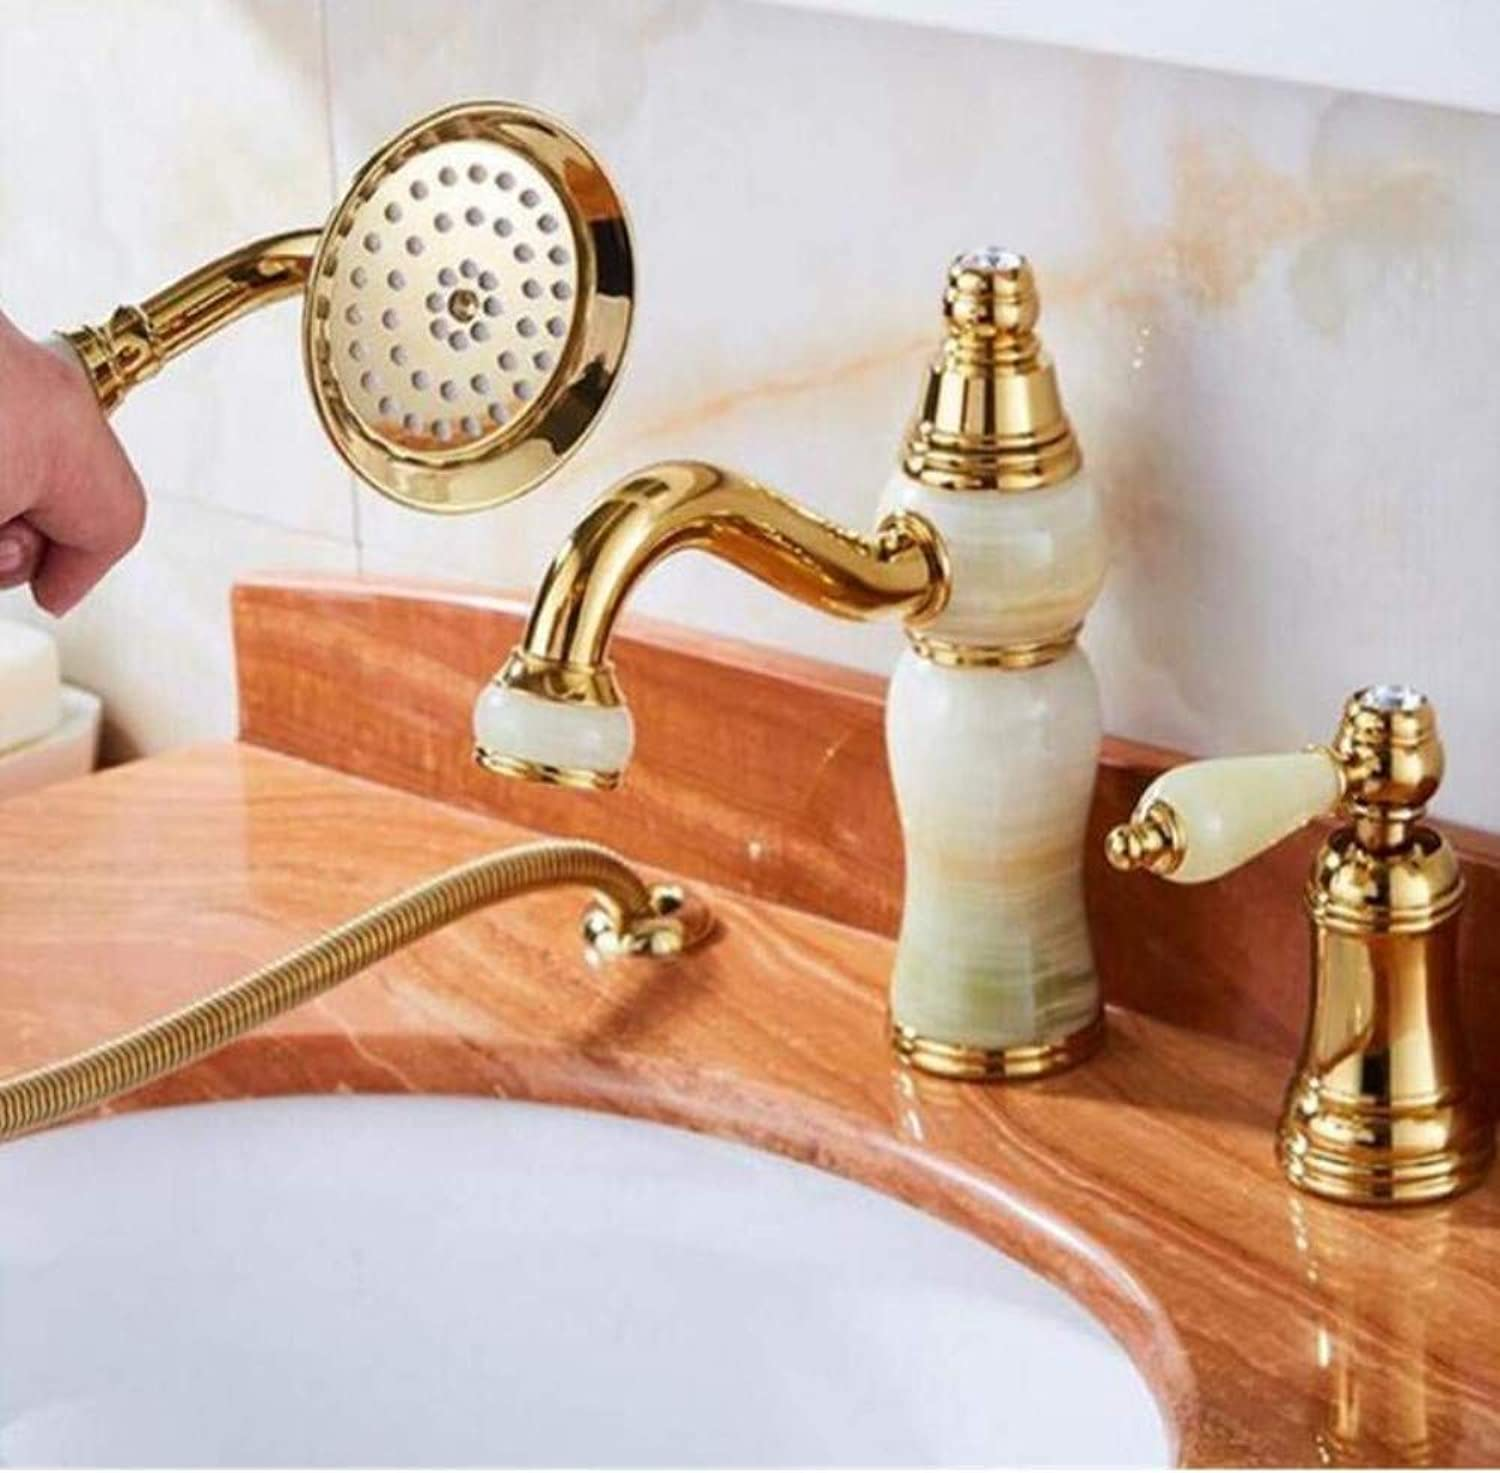 Brass Wall Faucet Chrome Brass Faucetfaucet Single Handle with Diamond Vanity Sink Mixer Water Tap